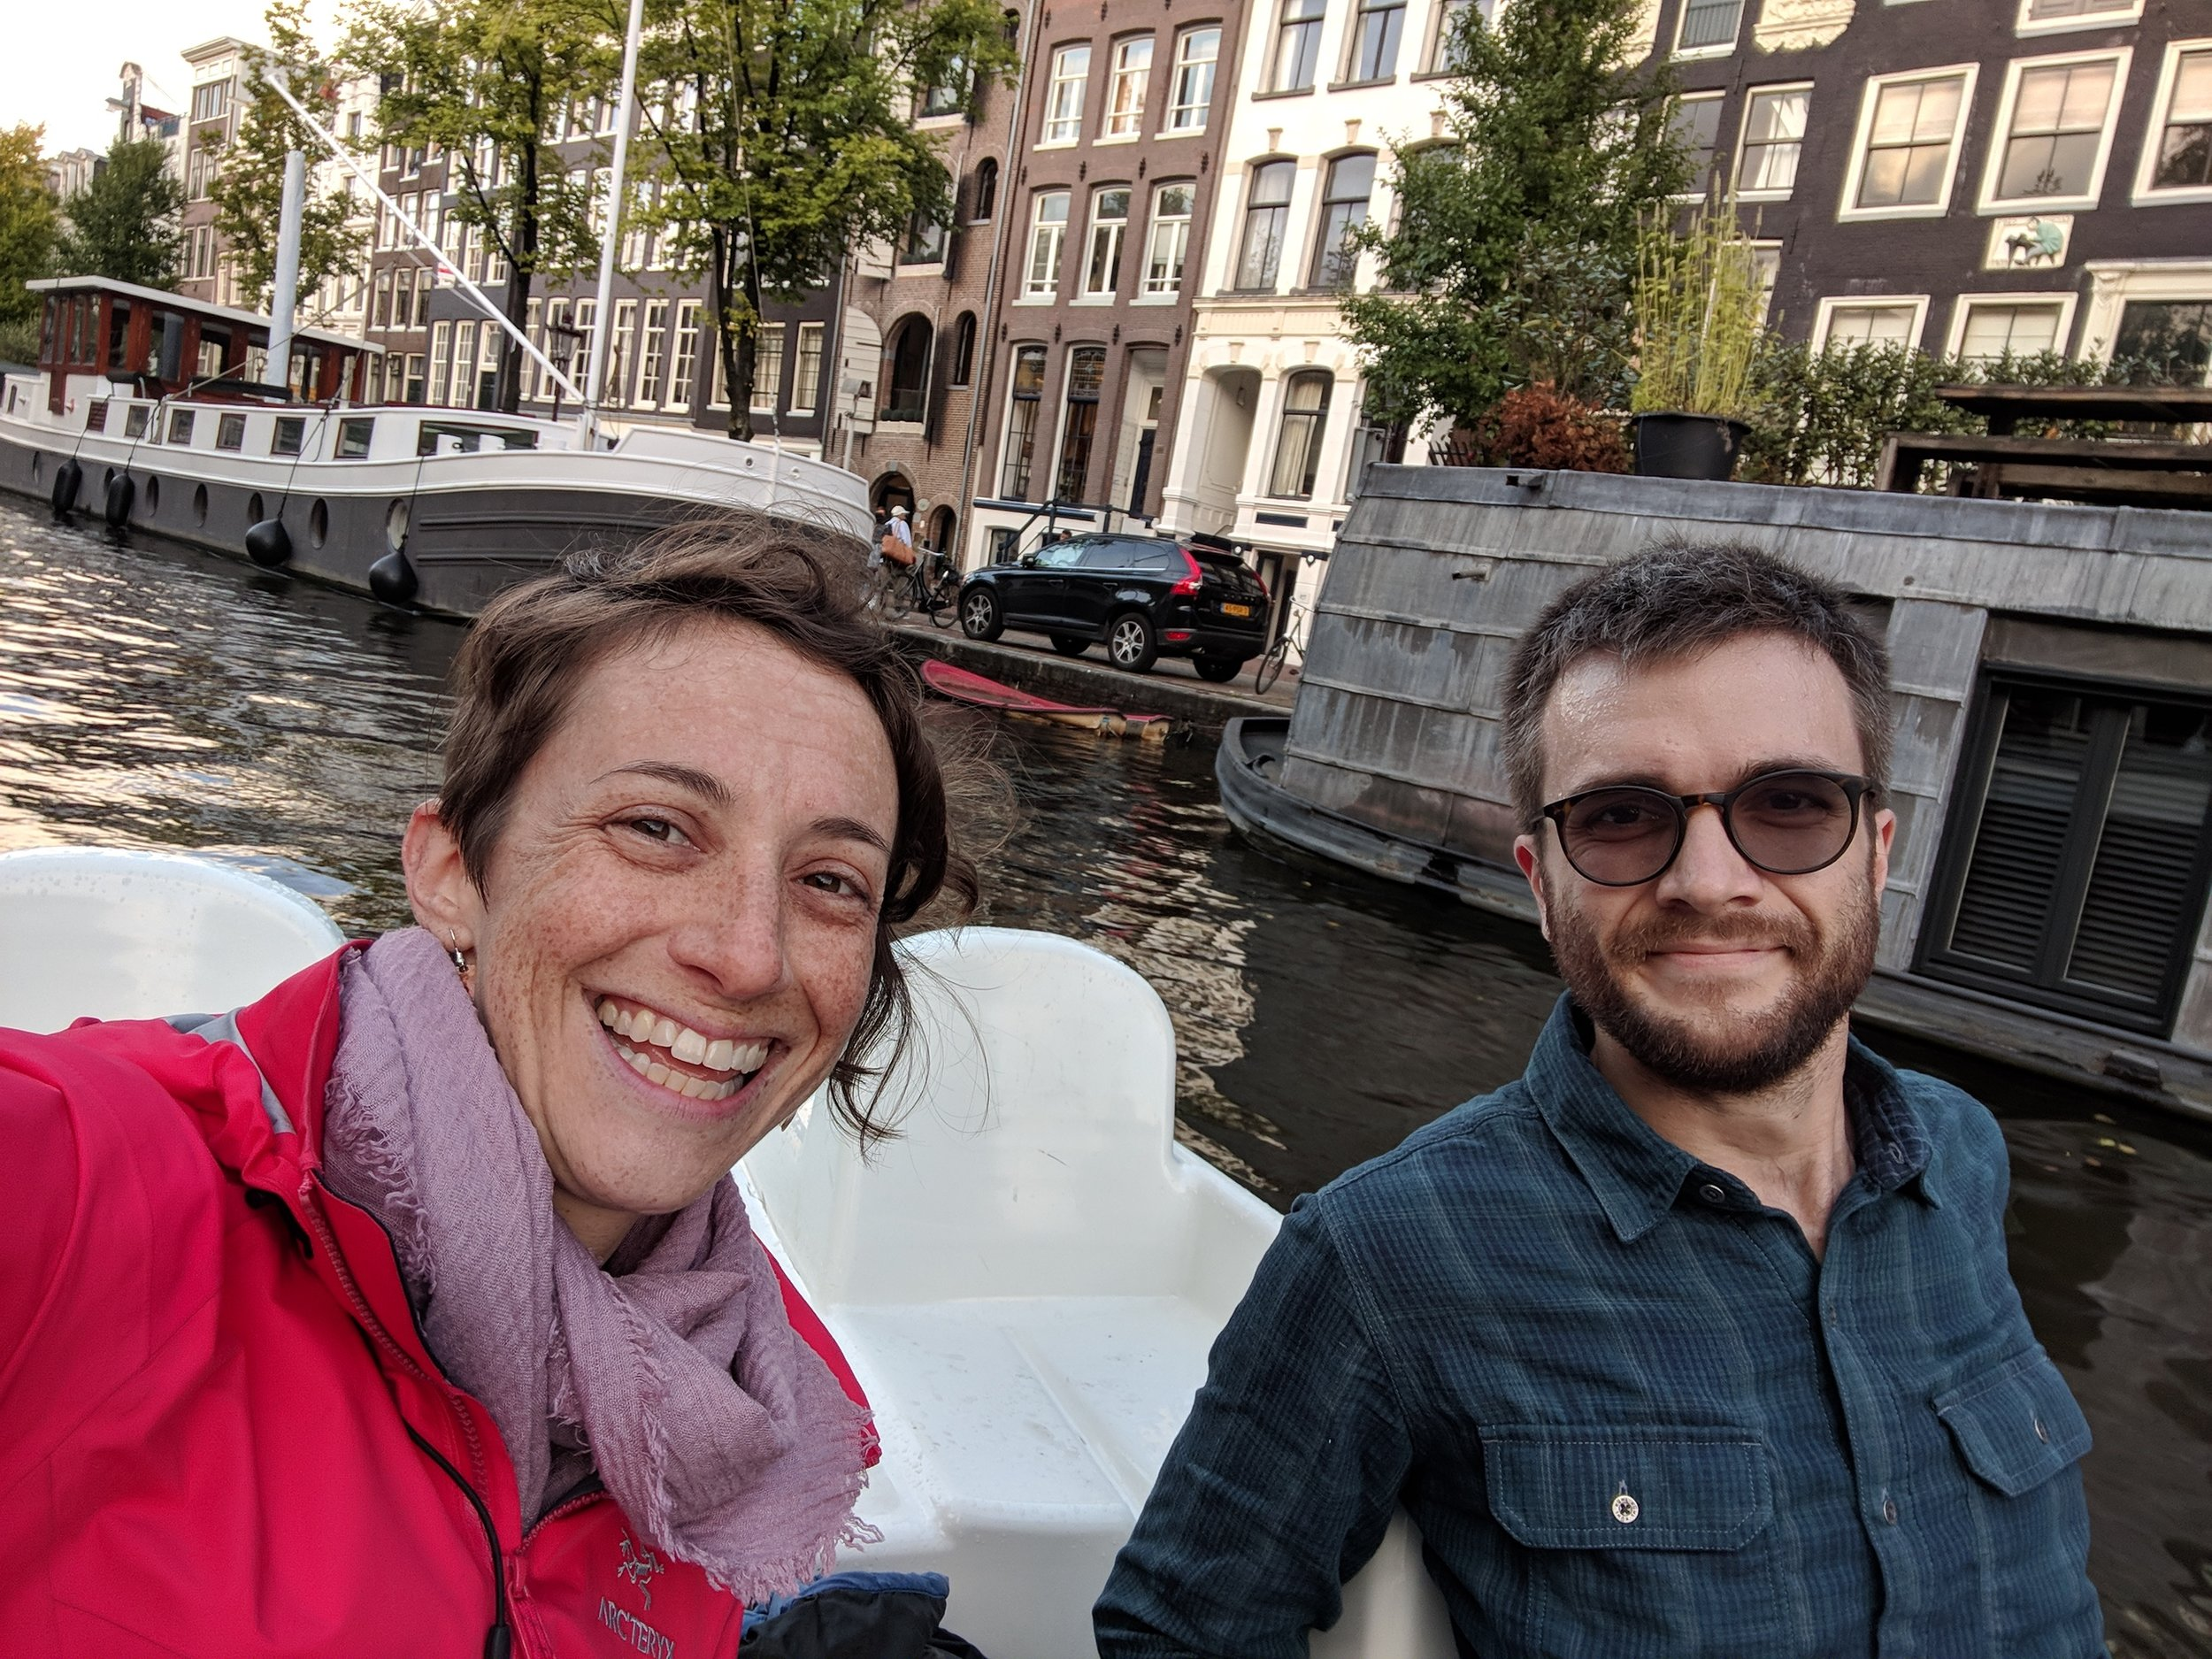 Getting a workout in a pedal boat on the canals in Amsterdam.  Confession: Noah did most of the work.